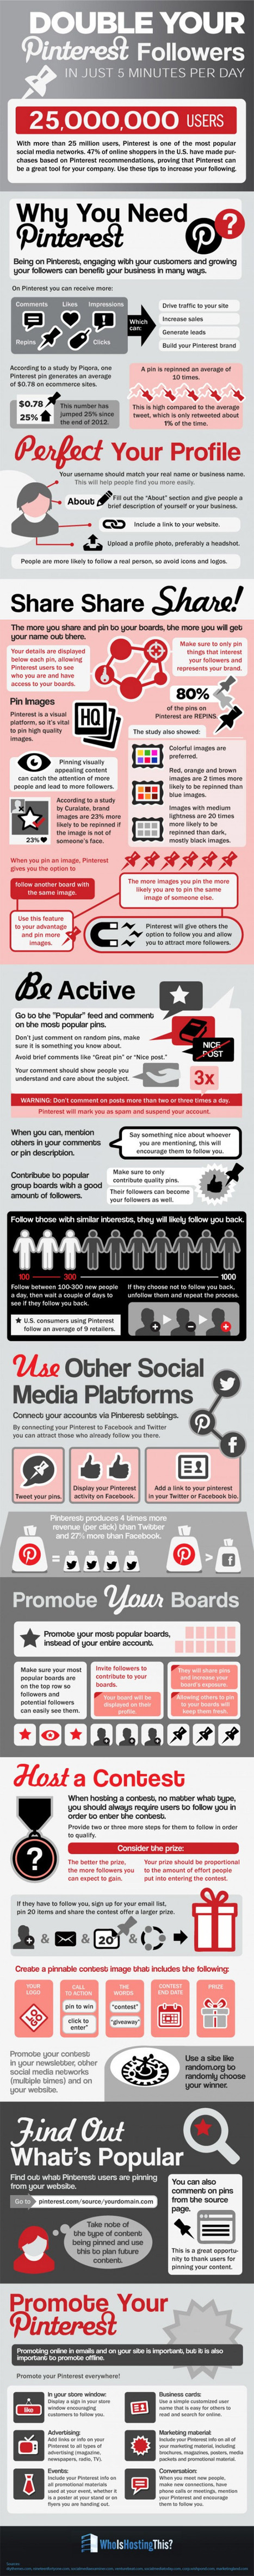 How You Can Get More Pinterest Followers (Infographic) | Graphic Design & Branding | Scoop.it